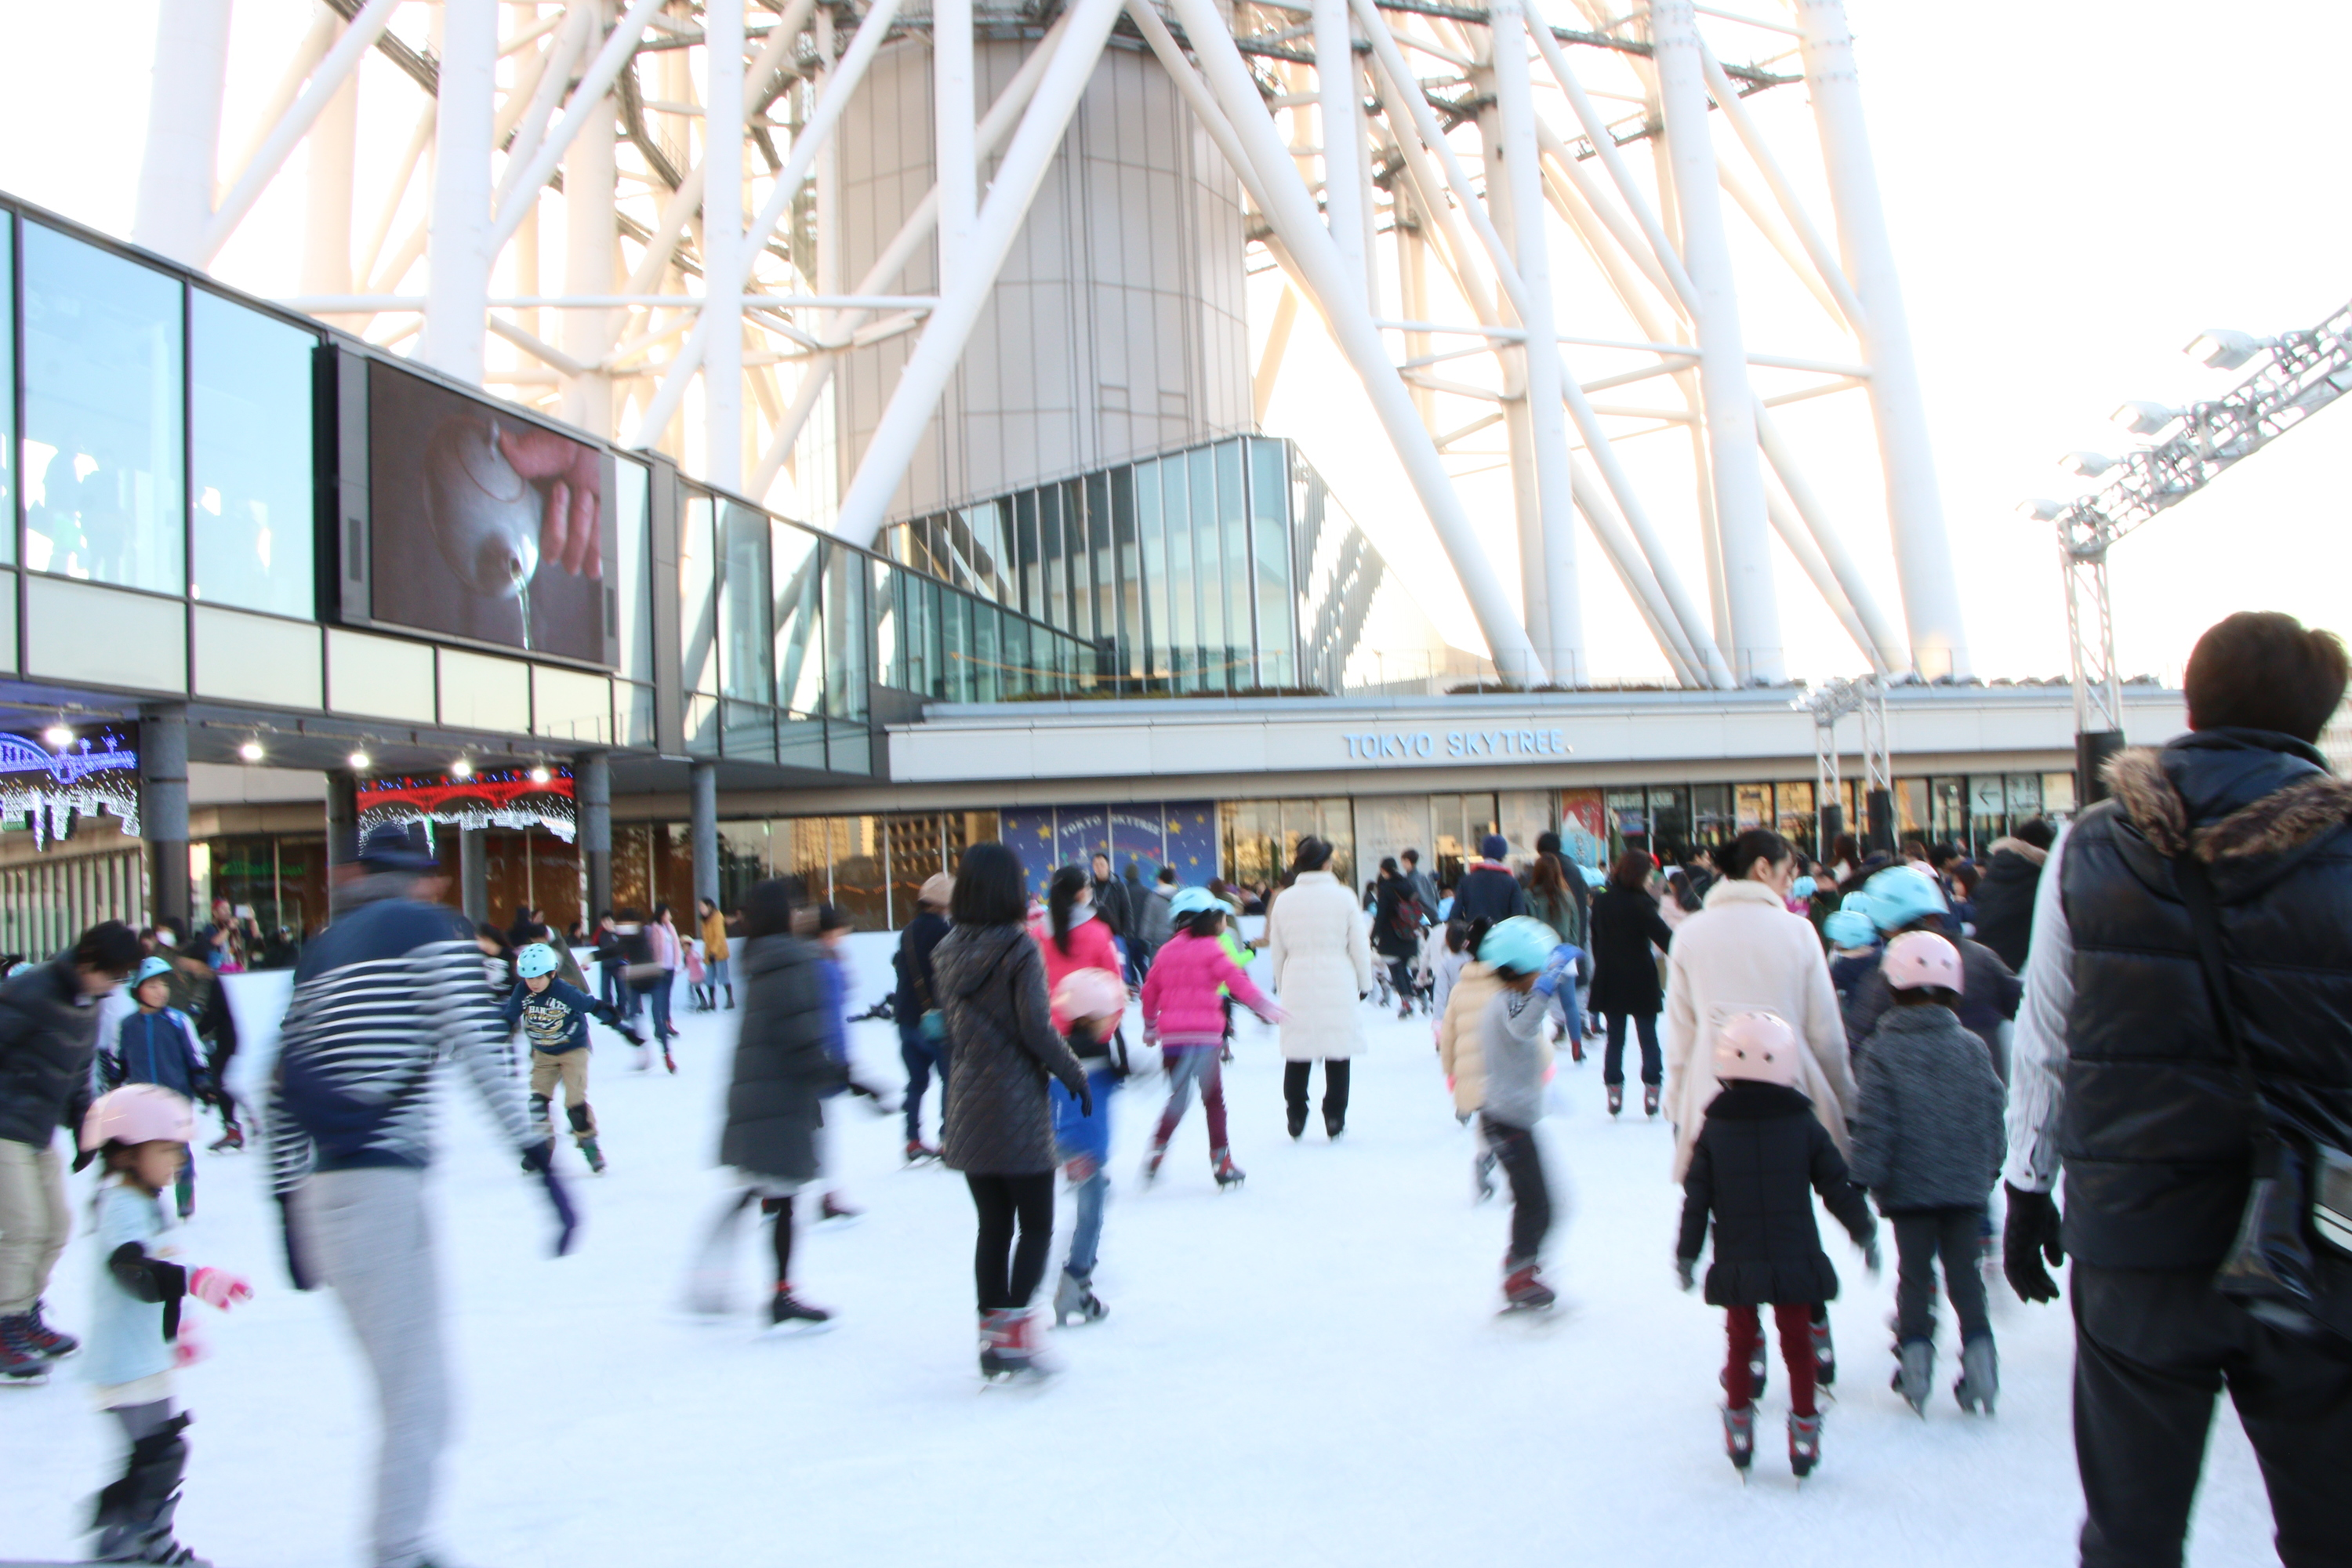 TOKYO SKYTREE TOWN® ICE SKATING PARK